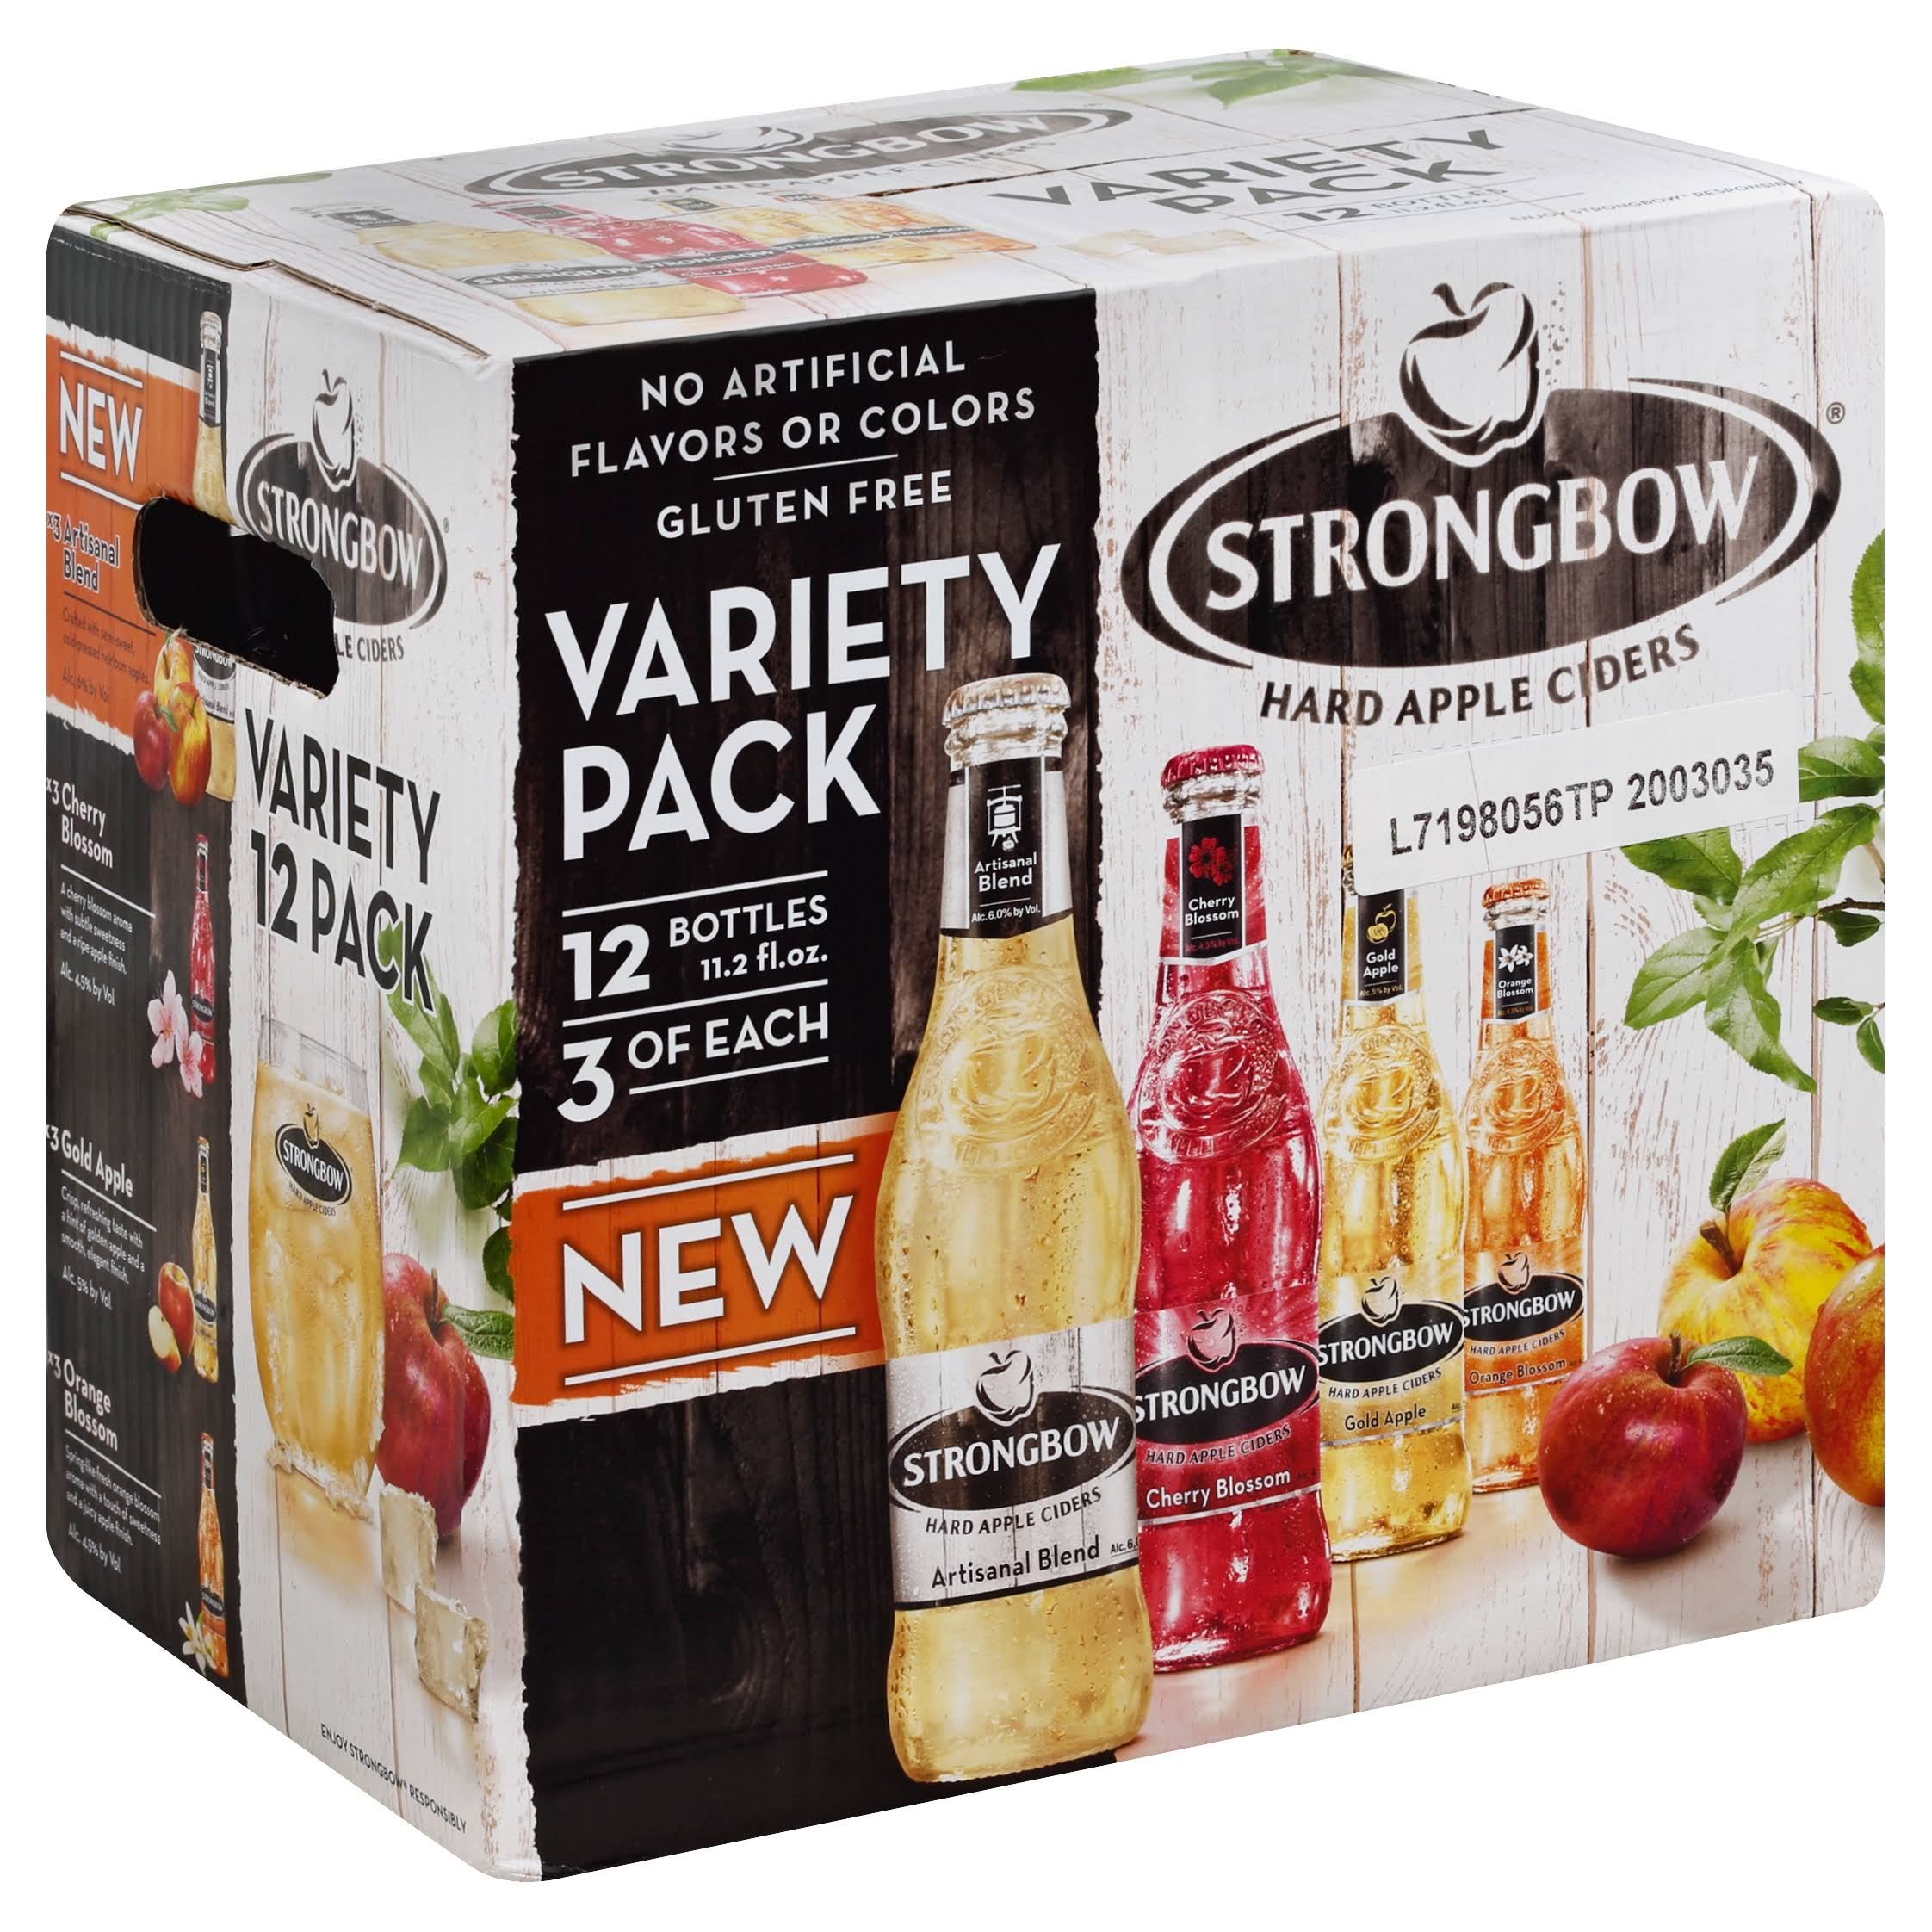 Strongbow Hard Apple Cider - Variety Pack, 11.2oz, 12pk